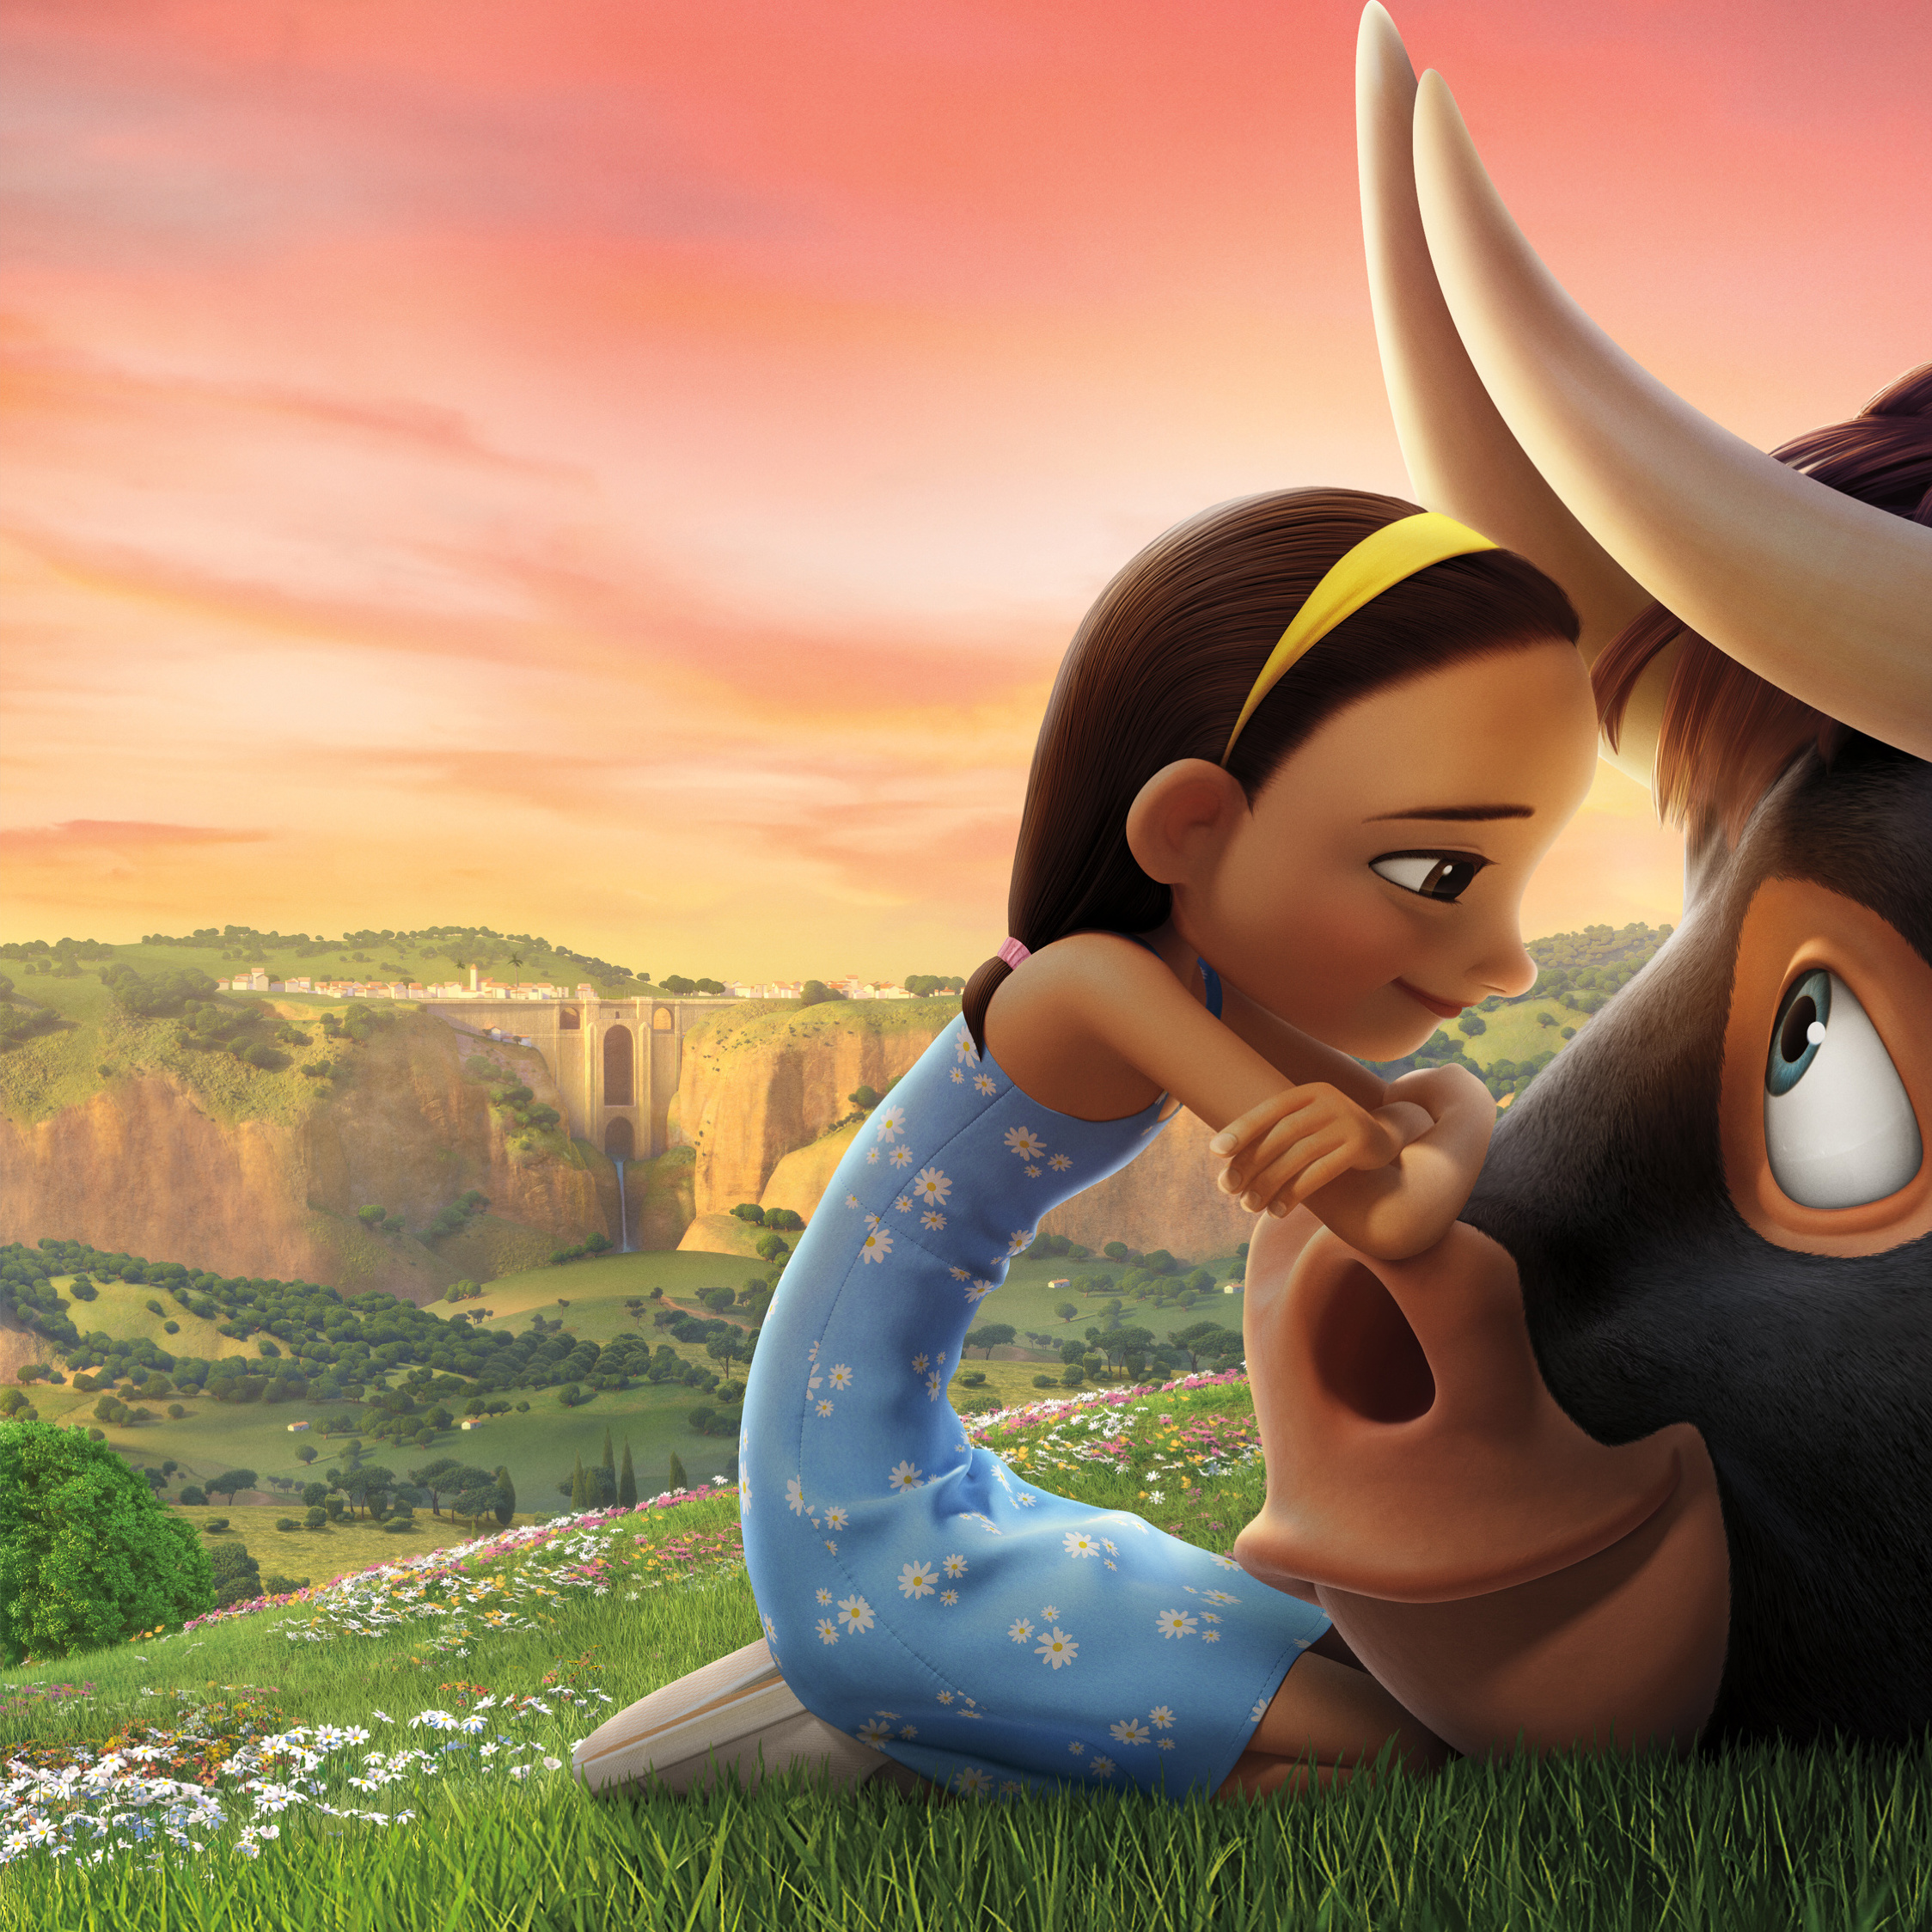 Download Ferdinand Movie Still 2560x1024 Resolution, HD 4K